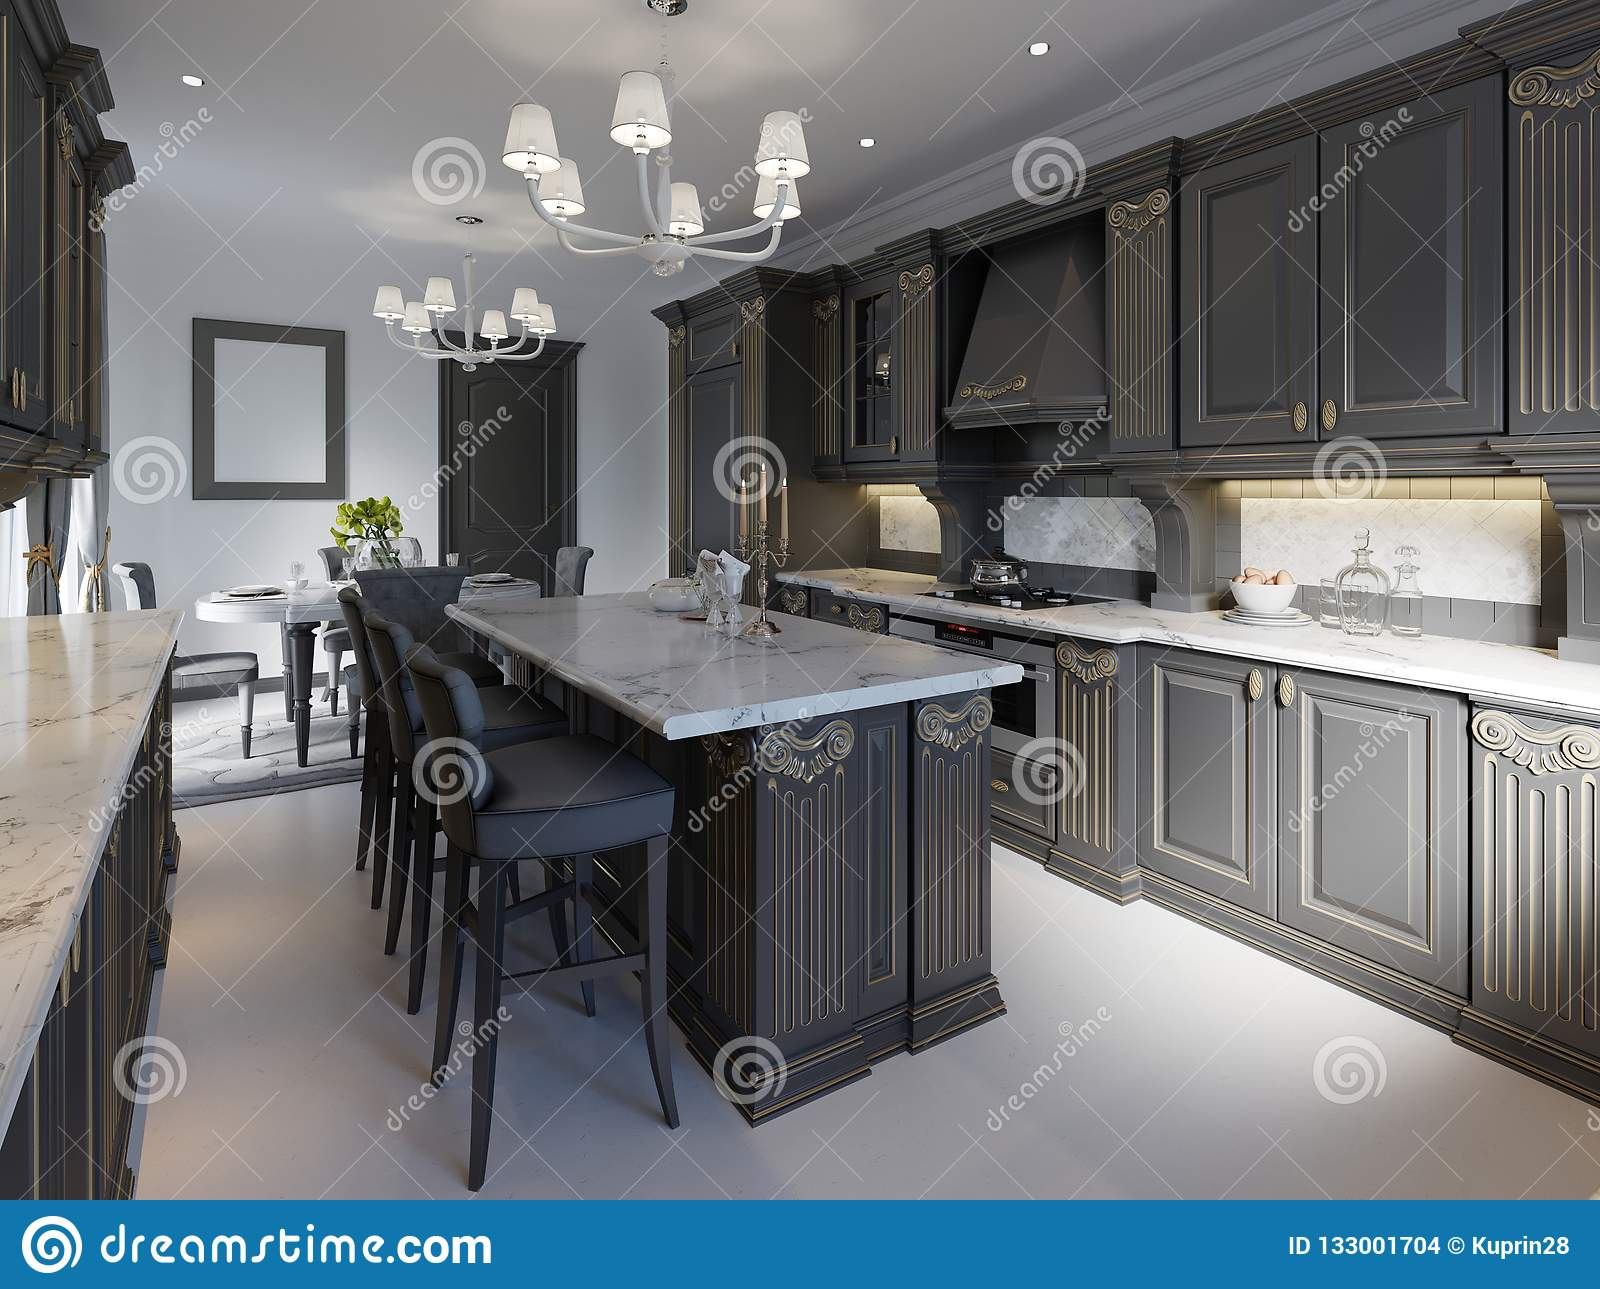 Modern Classic Kitchen Design With Black Cabinets And White